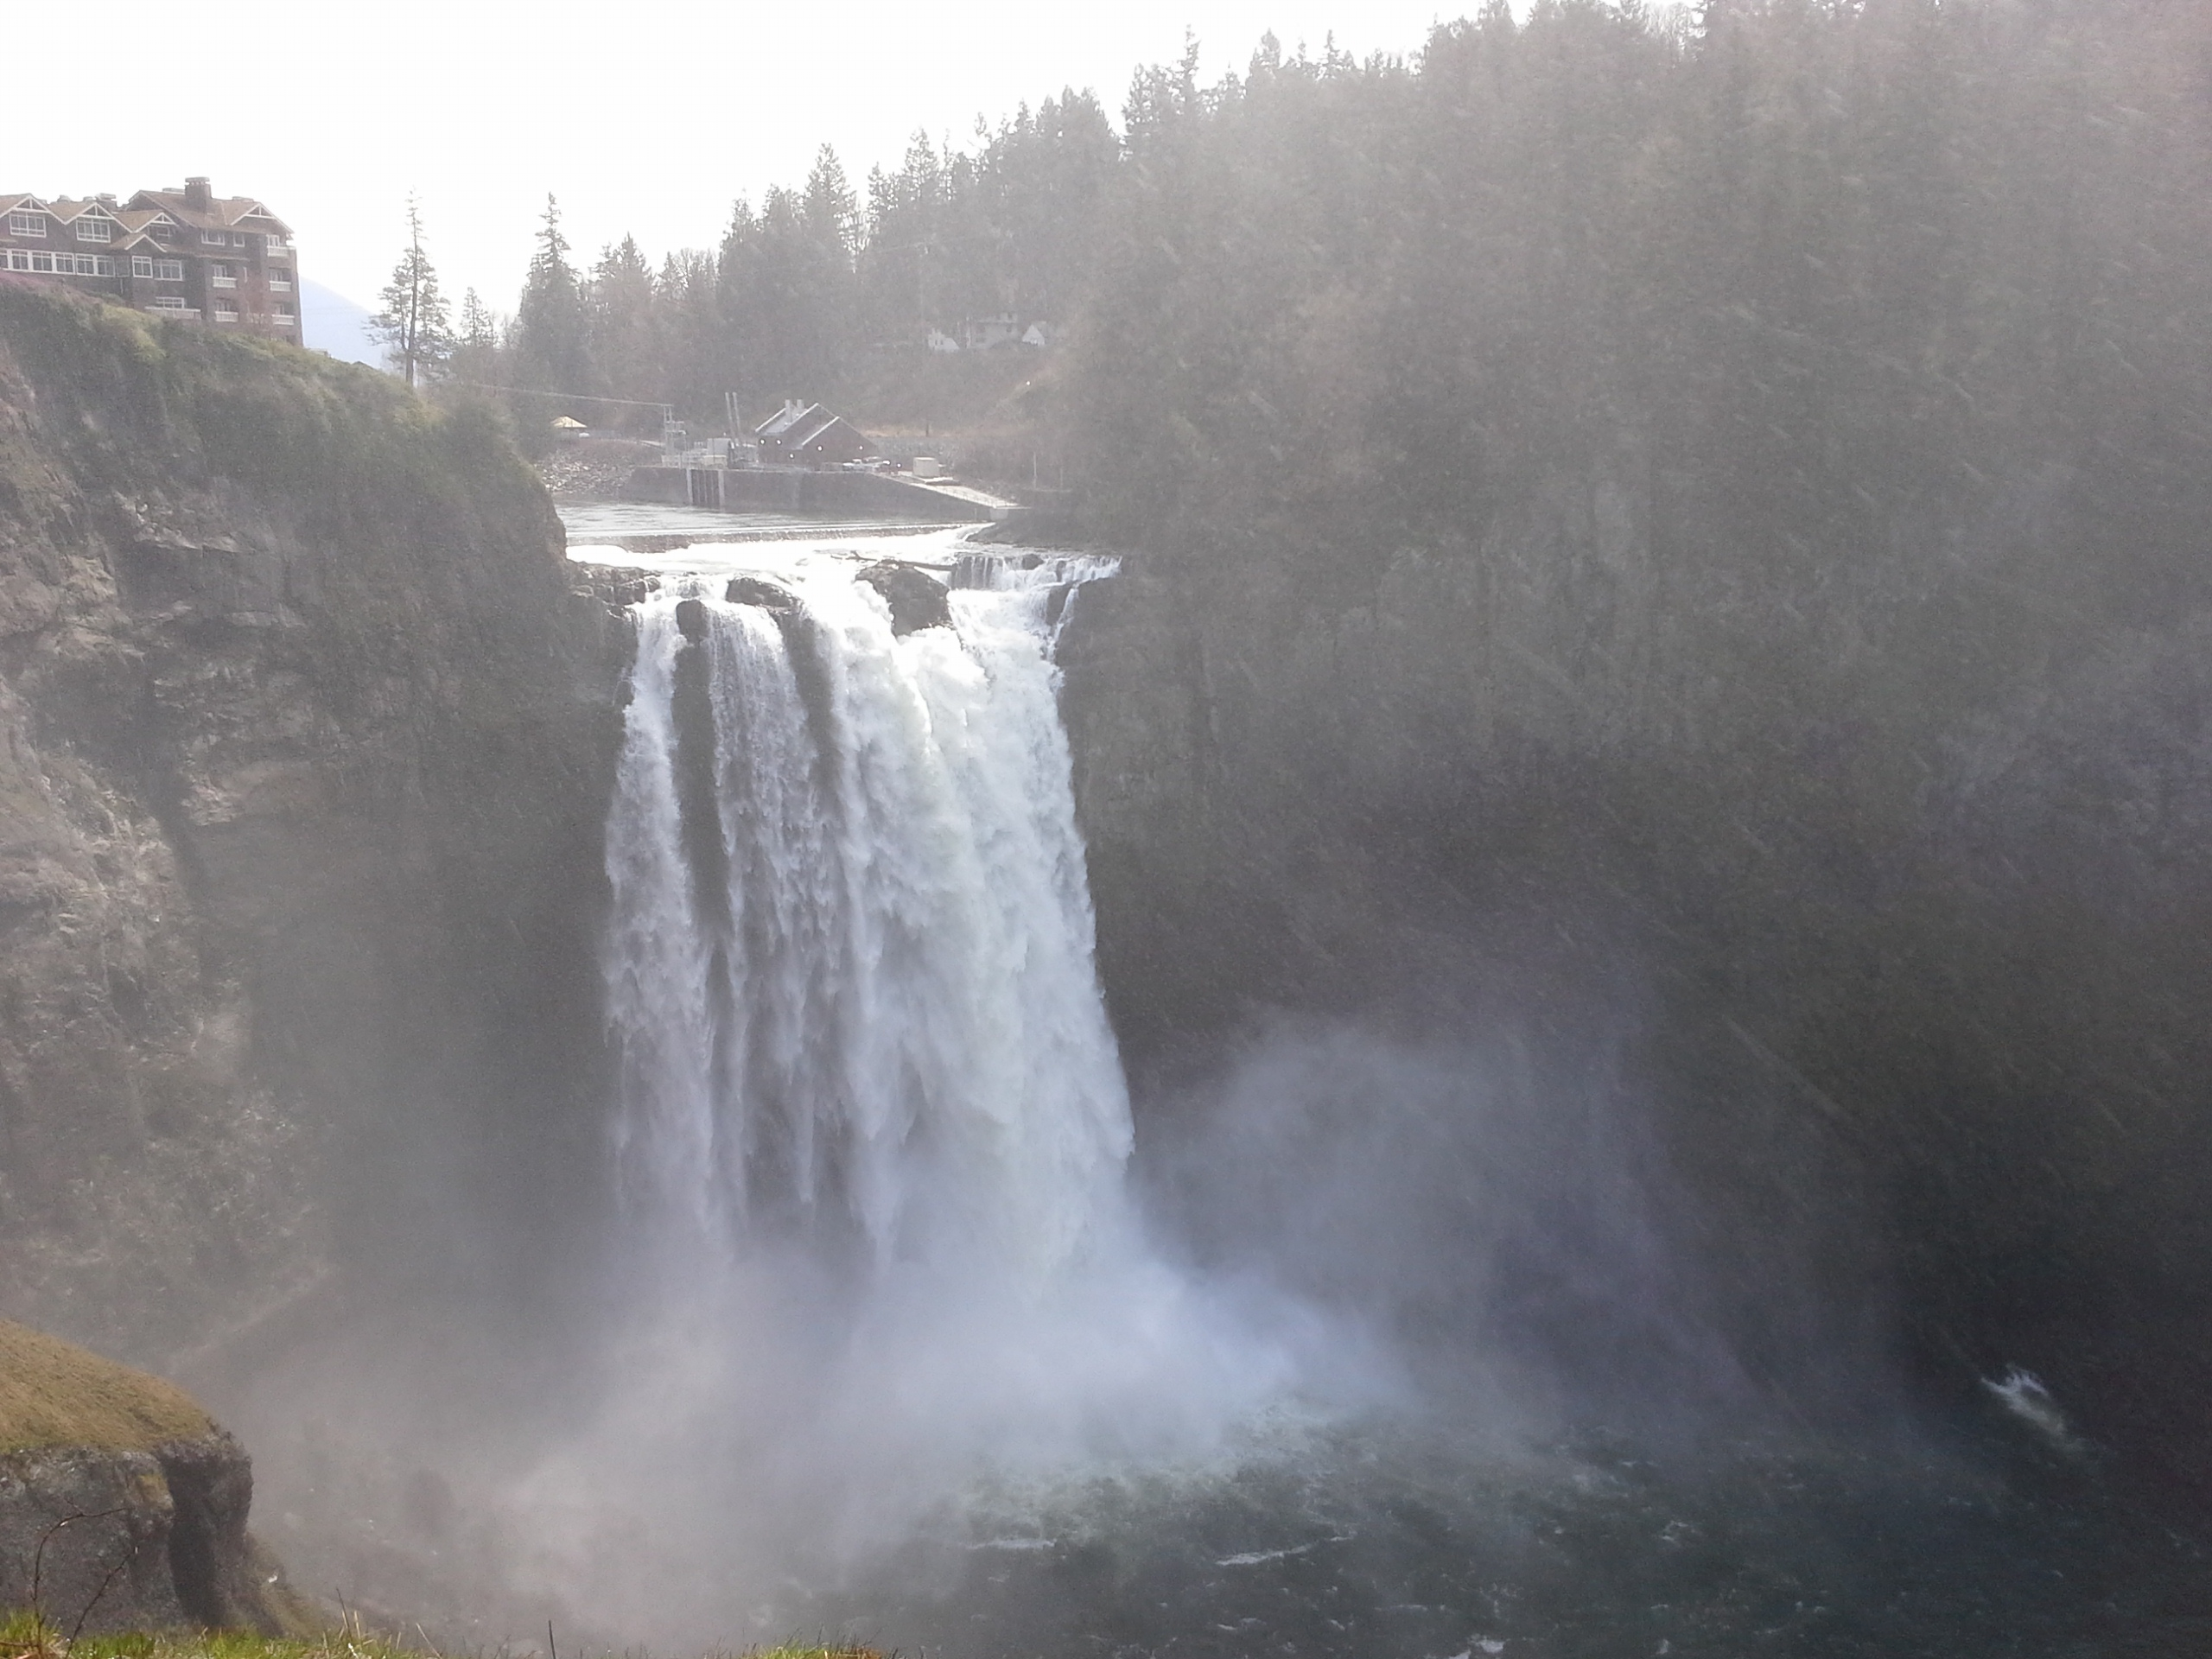 A trip out to Snoqualmie Falls with the family! We've been meaning to go here forever. It's about 30 min east of Seattle.